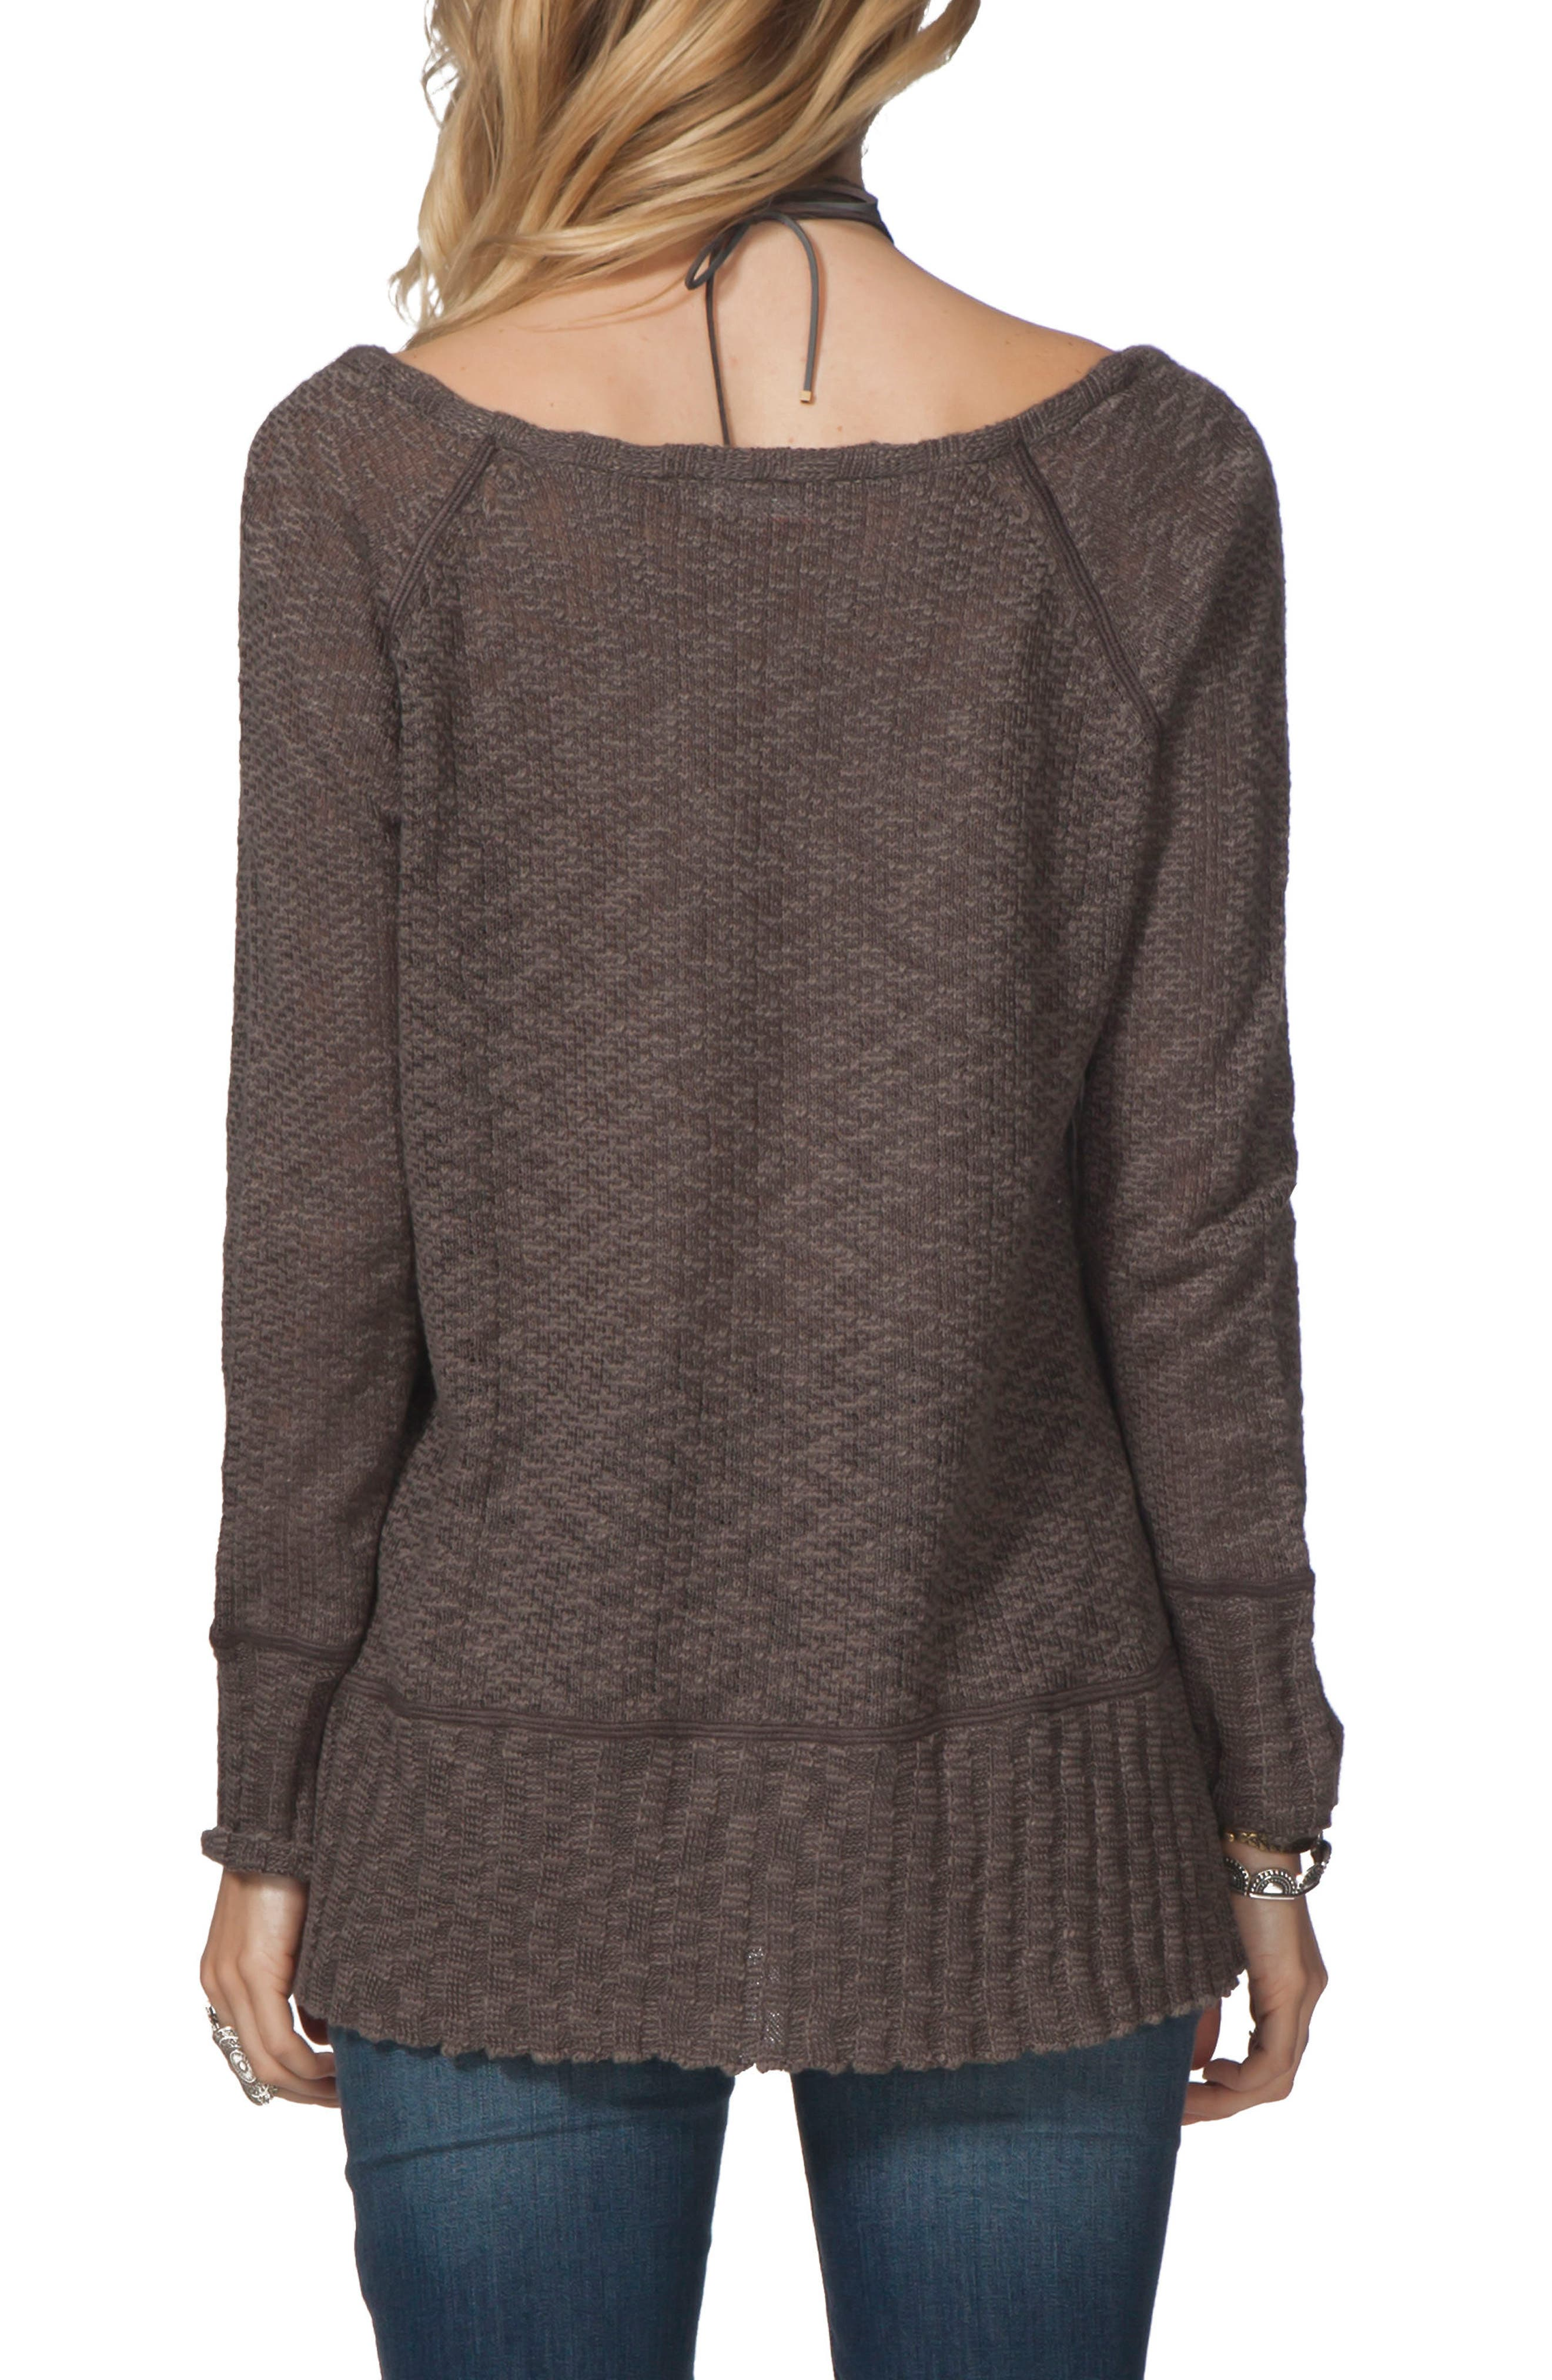 Hideaway Pullover,                             Alternate thumbnail 2, color,                             020